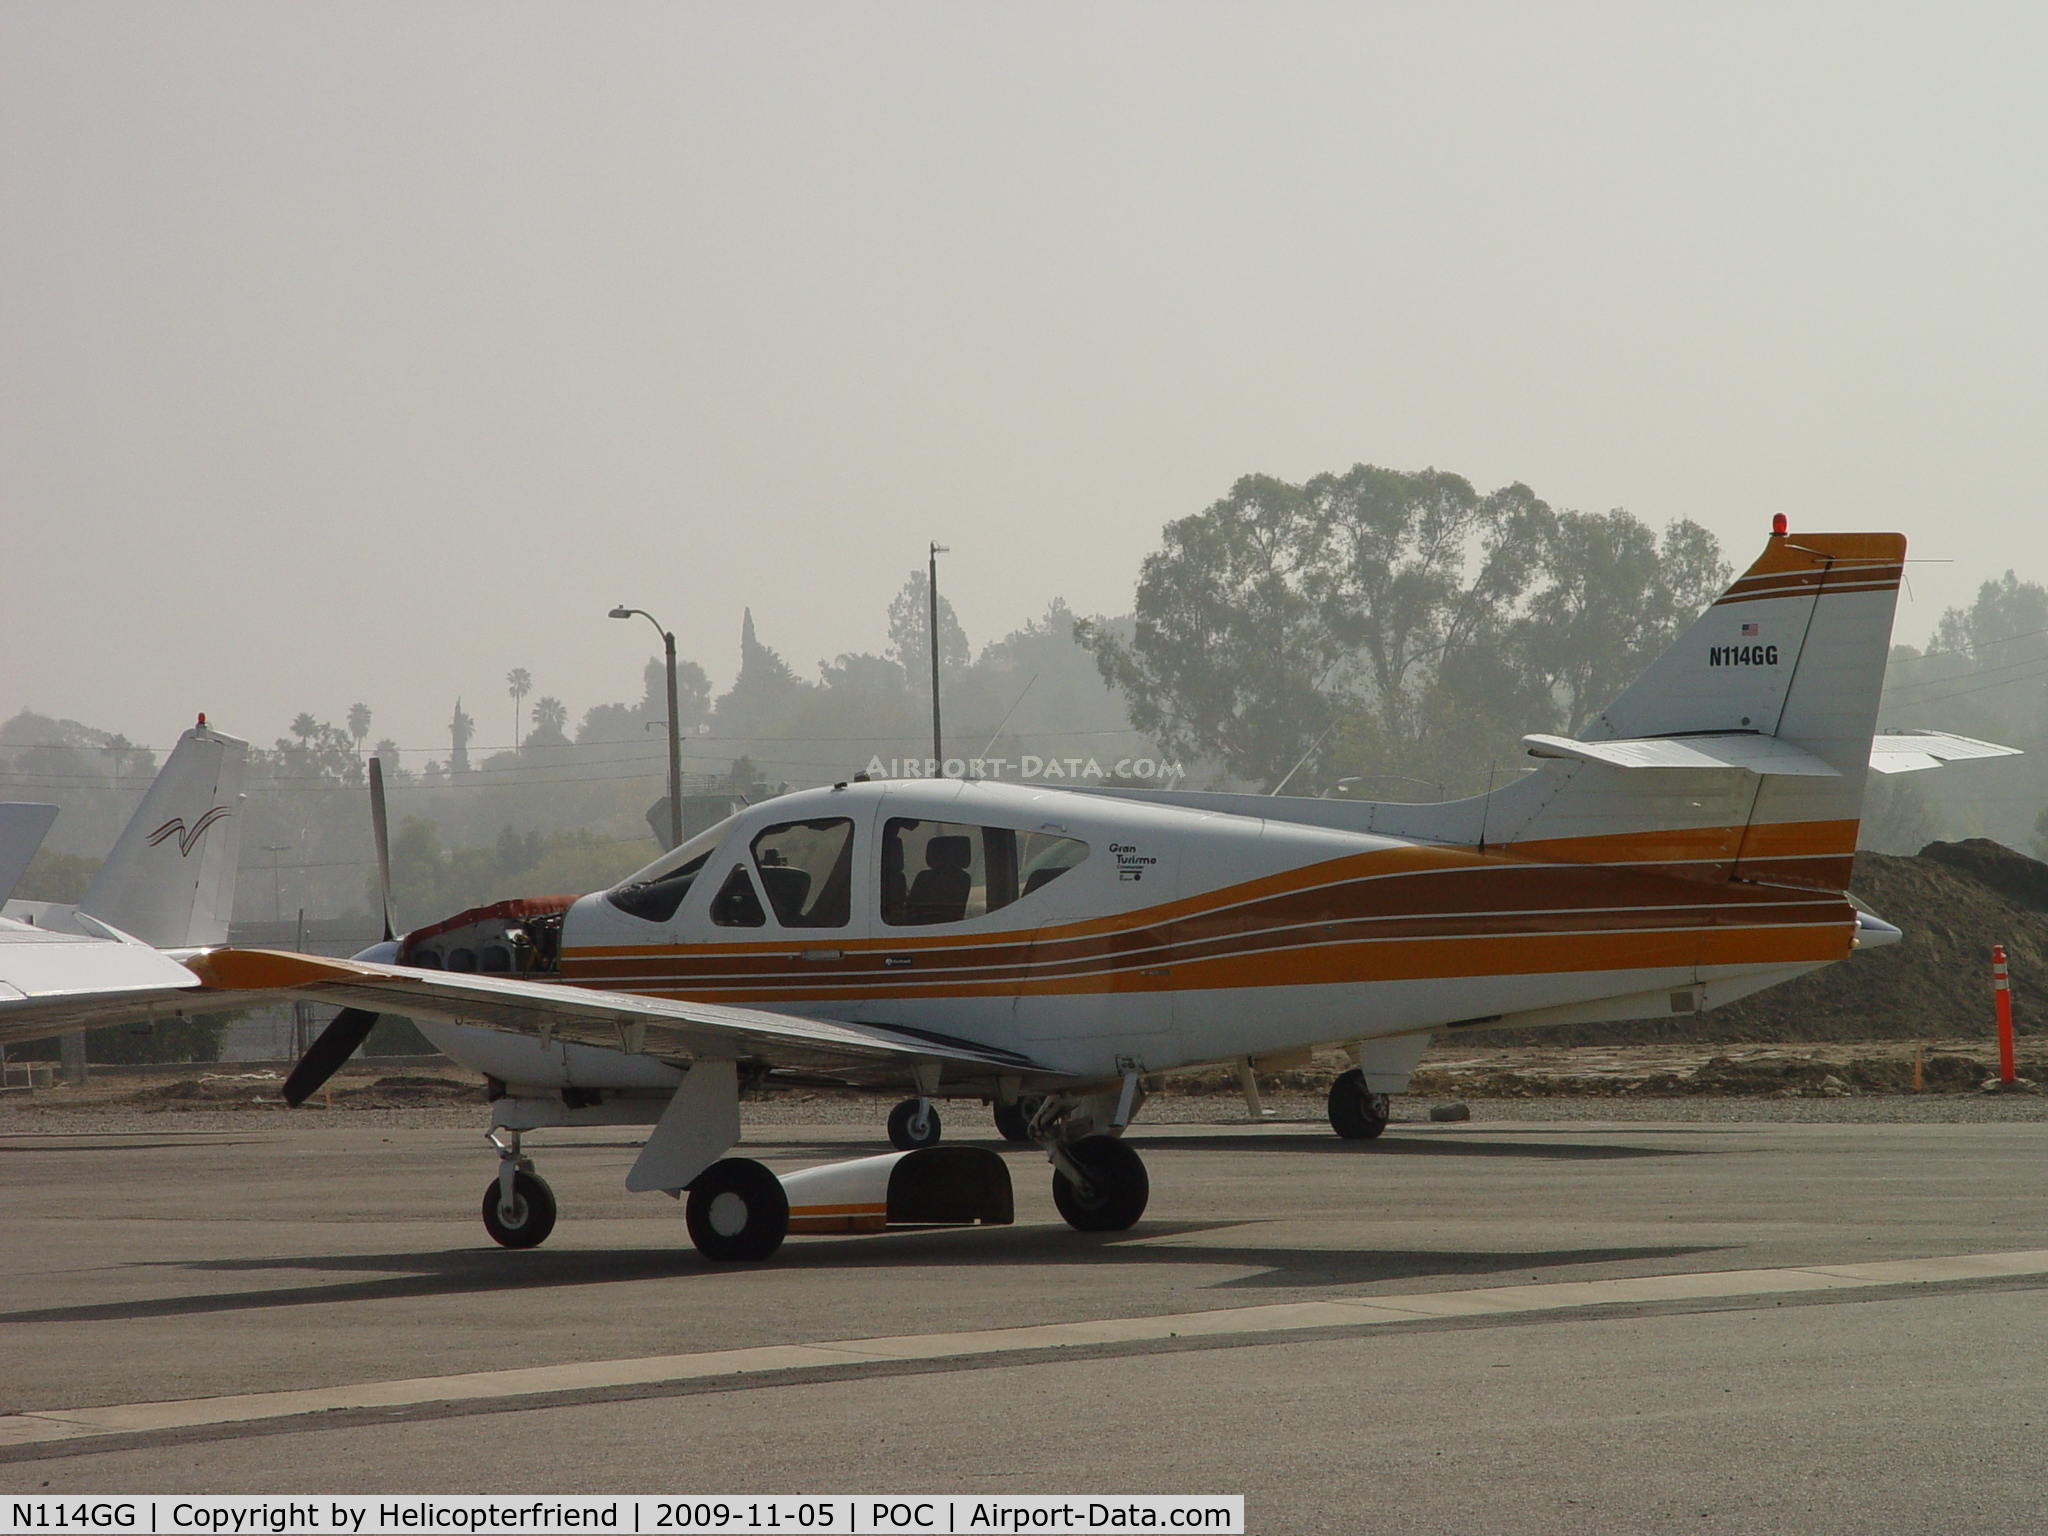 N114GG, Rockwell International 114A Commander C/N 14529, Cowling off for engine work at Howard Aviation